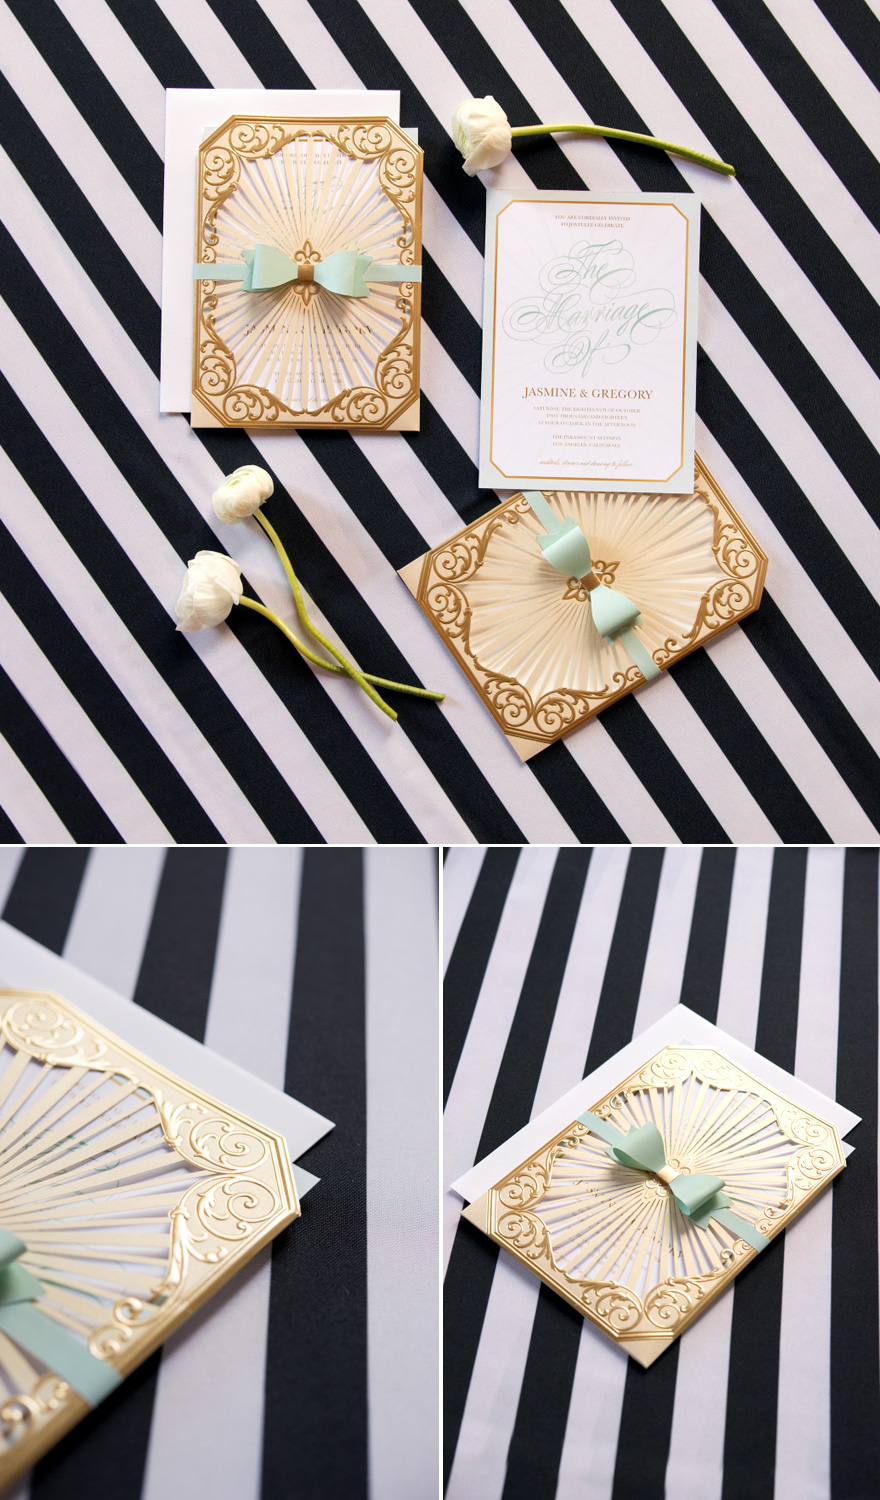 Black and Gold and Mint Green DIY Wedding Stationery with Stripes and Bows Accents   Confetti.co.uk